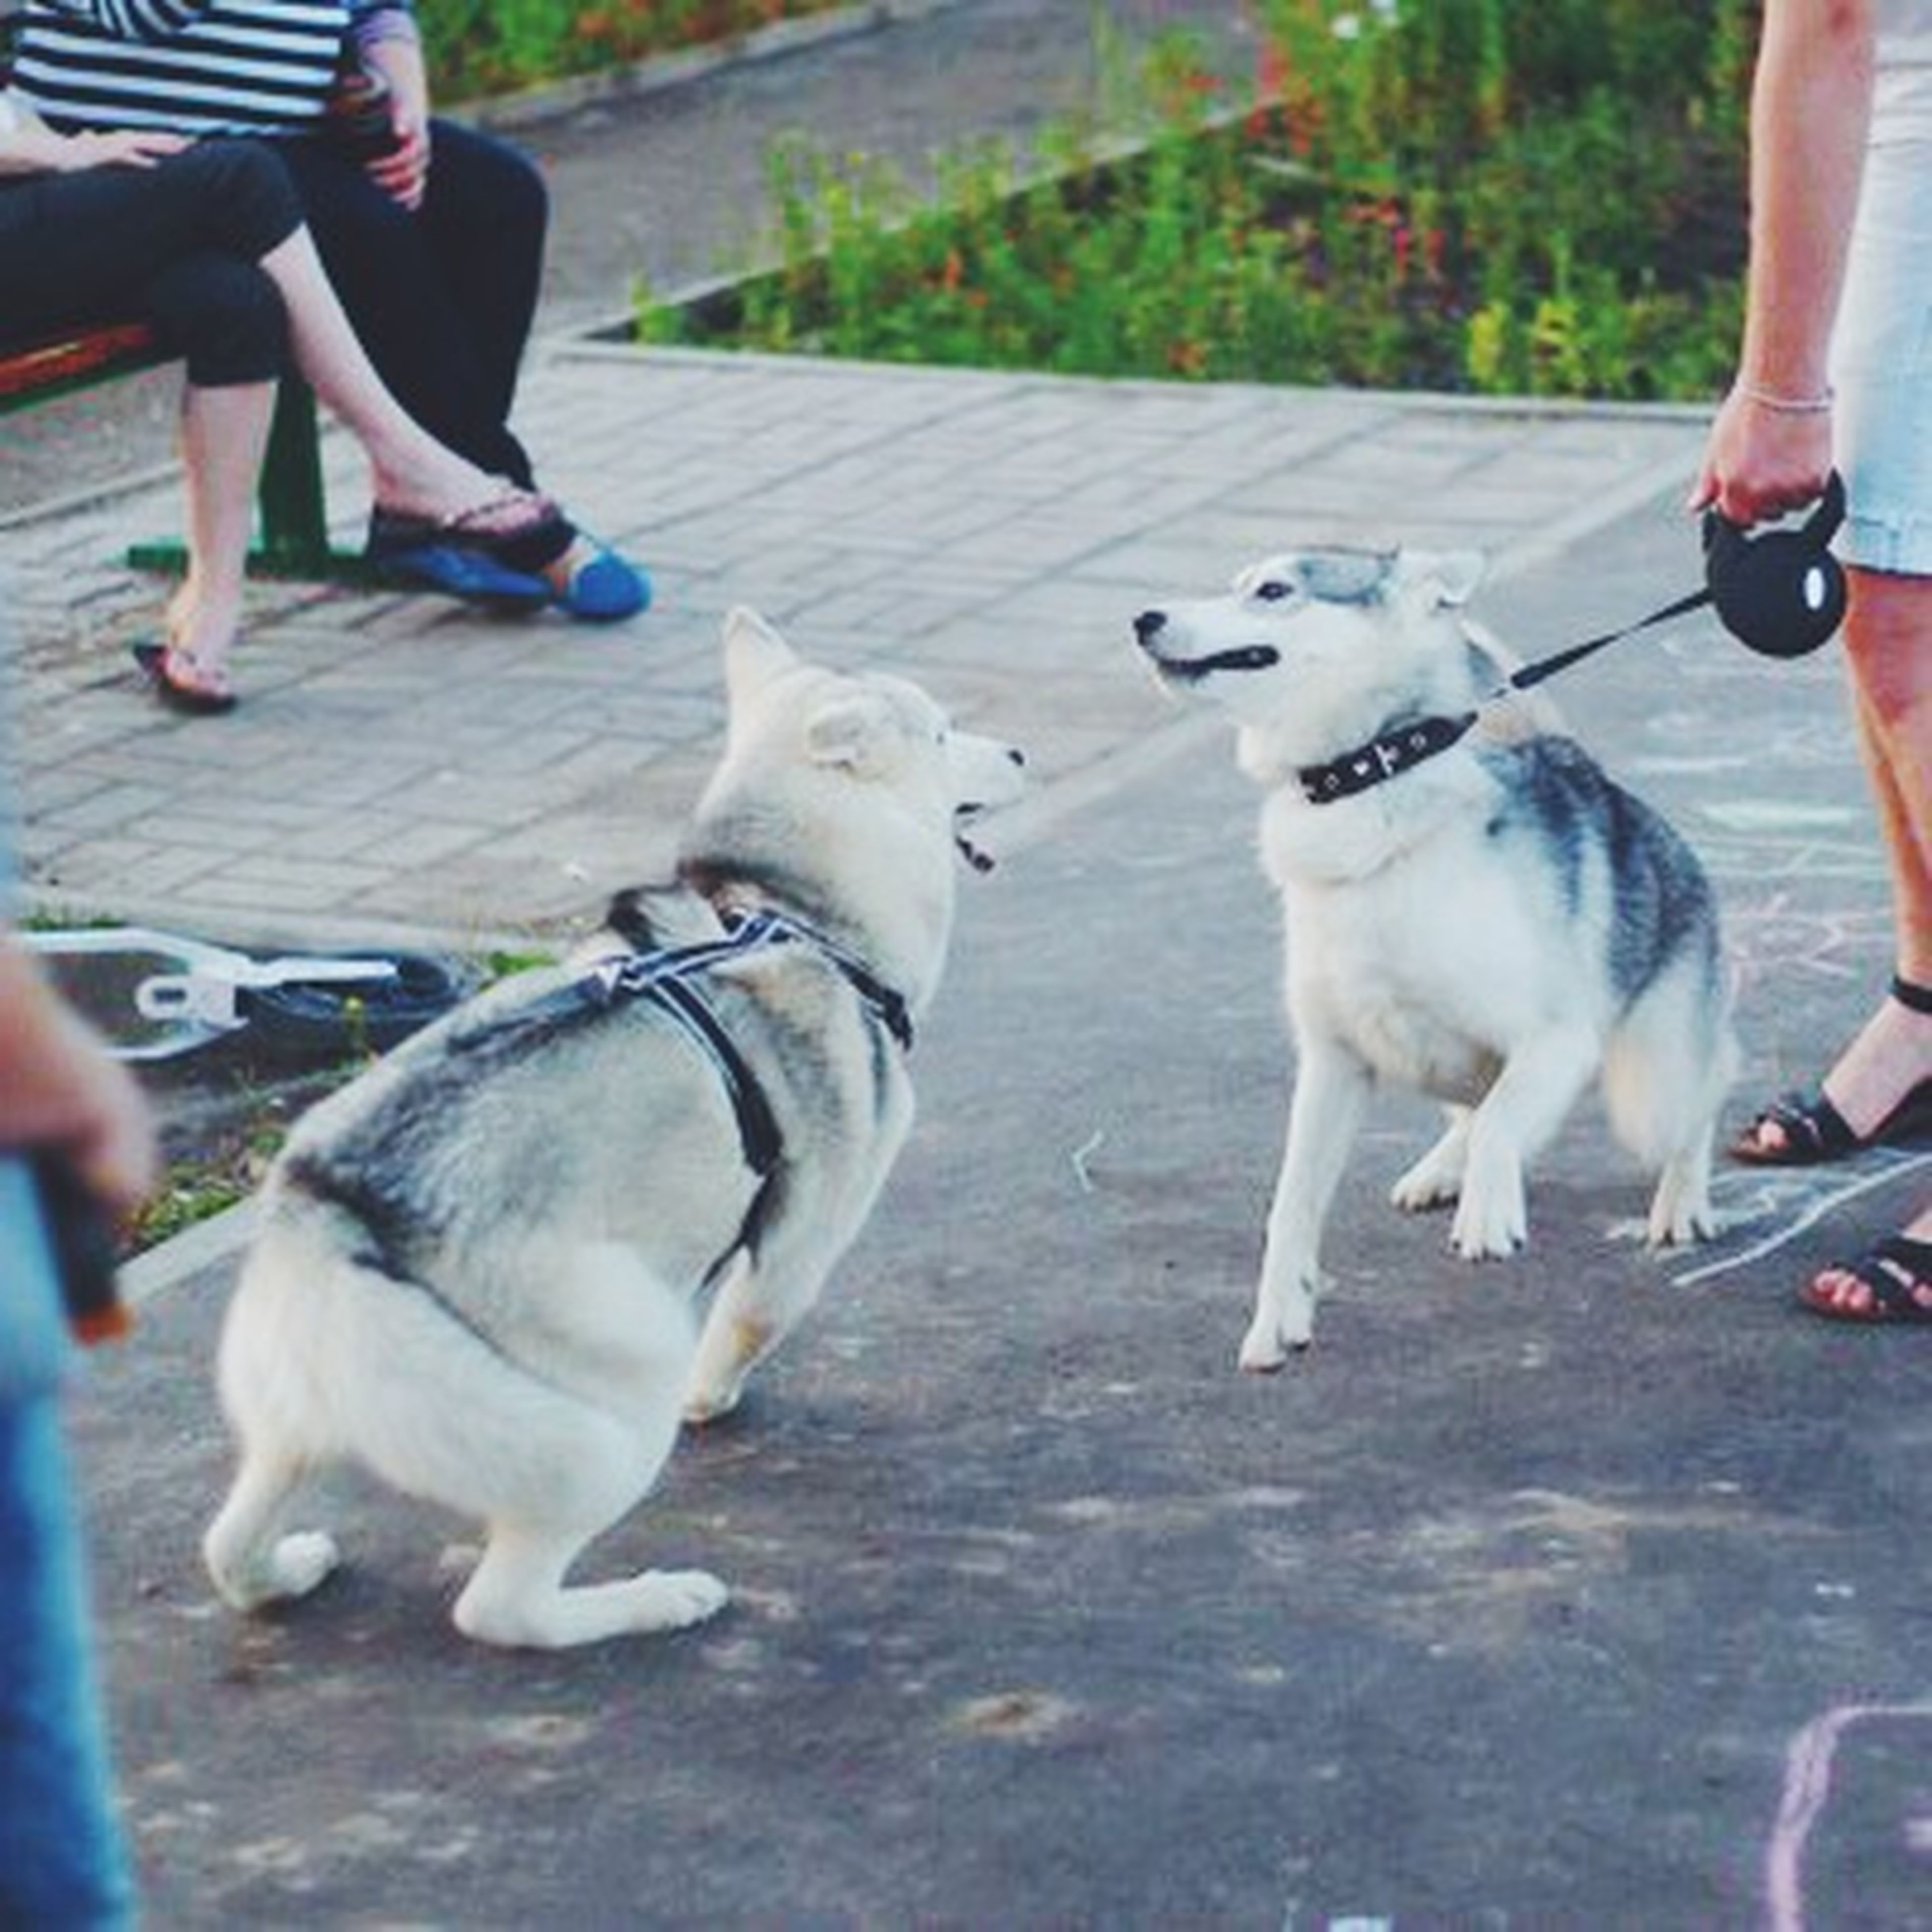 animal themes, domestic animals, mammal, pets, pet owner, one animal, lifestyles, men, low section, dog, leisure activity, togetherness, person, two animals, pet leash, holding